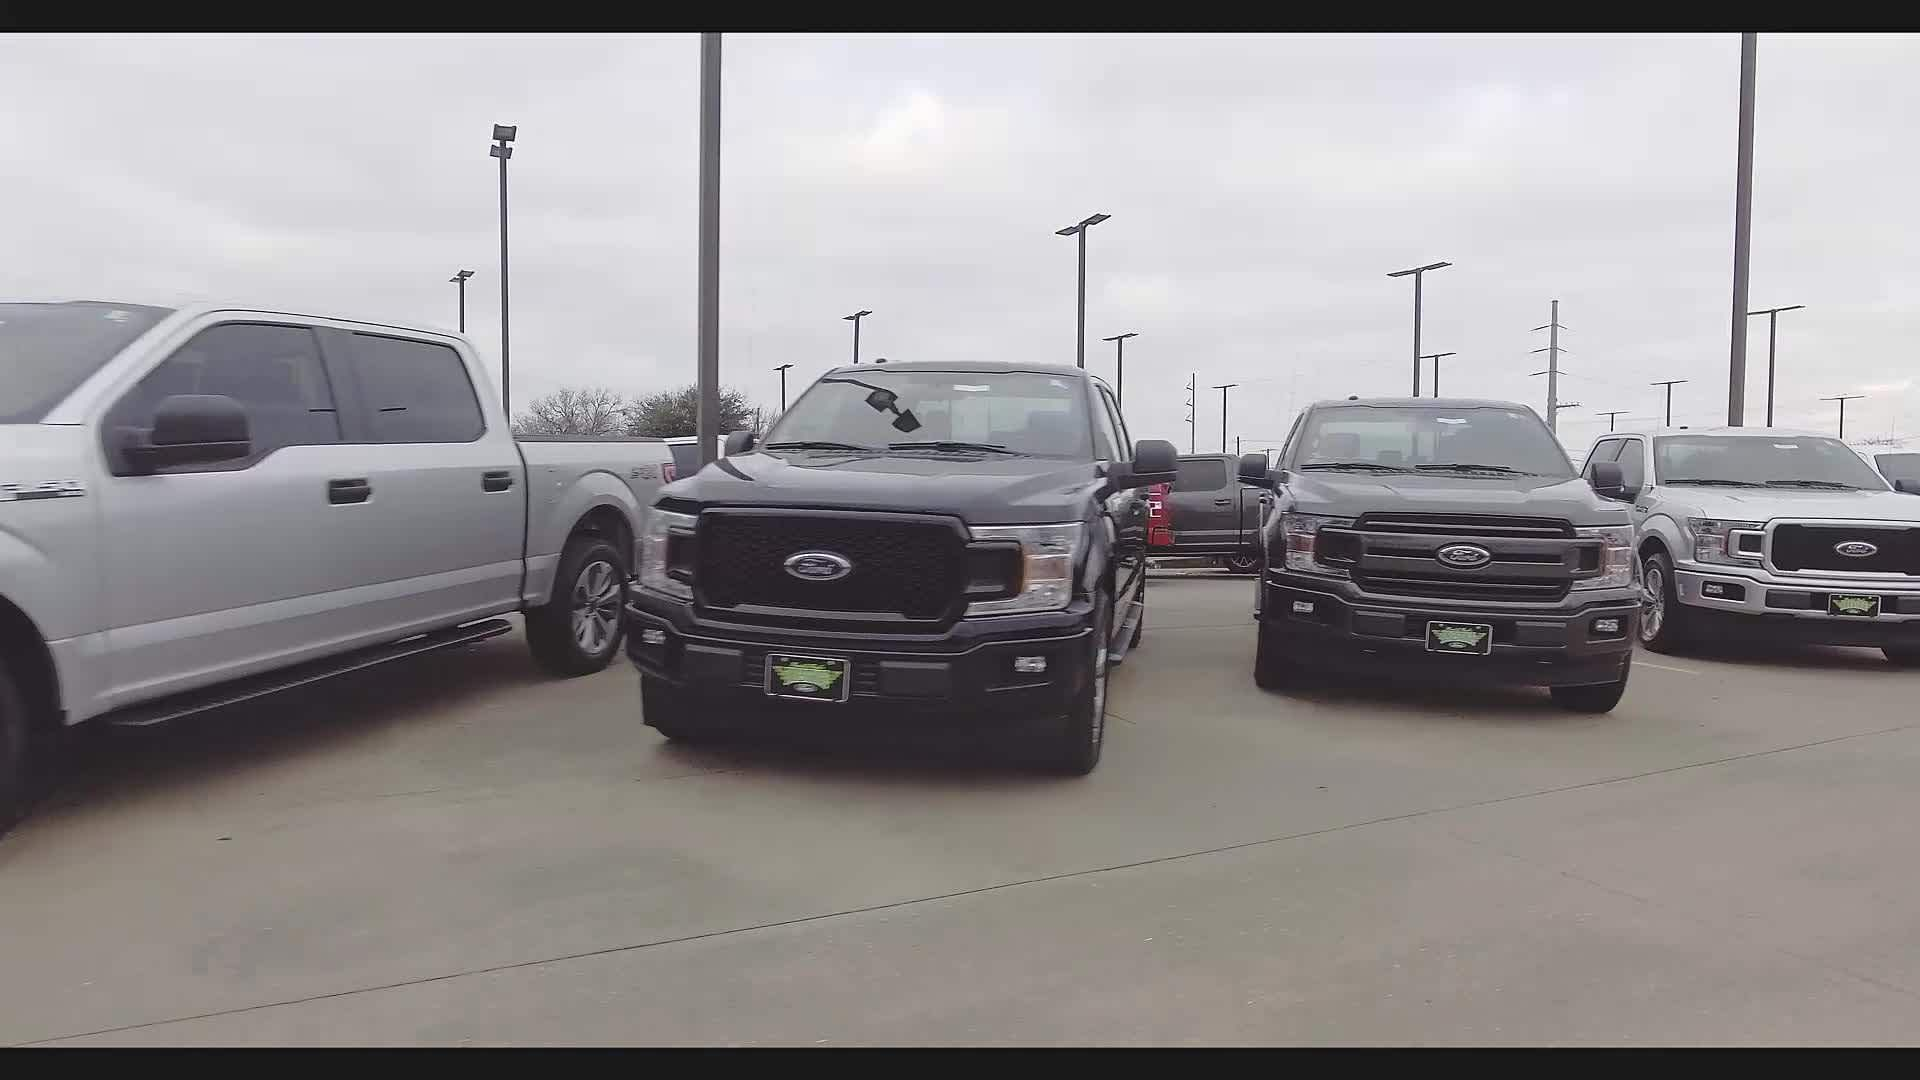 Ford Dealer Garland TX New & Used Cars for Sale near Dallas